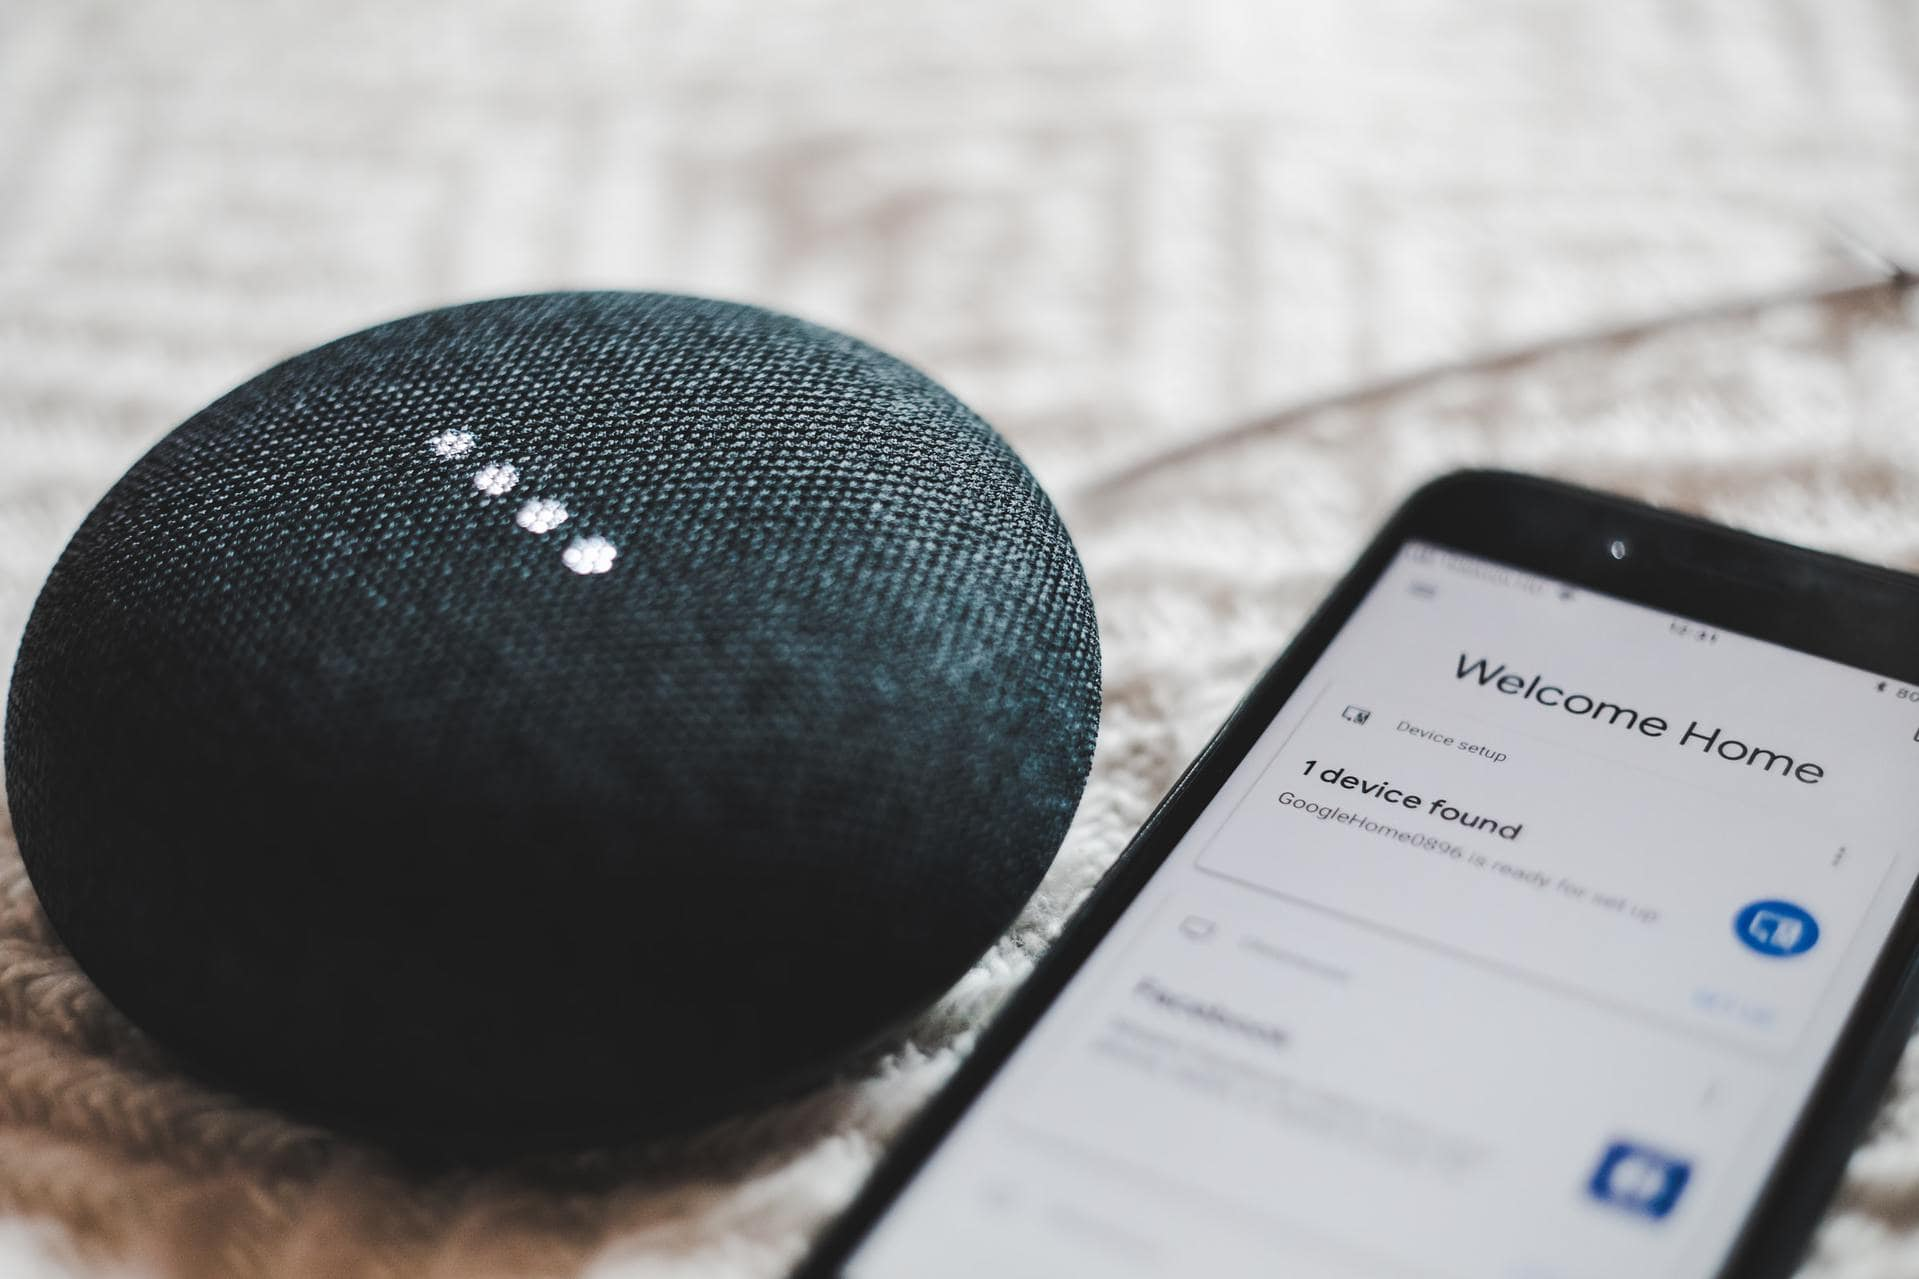 How to turn off Google Assistant?